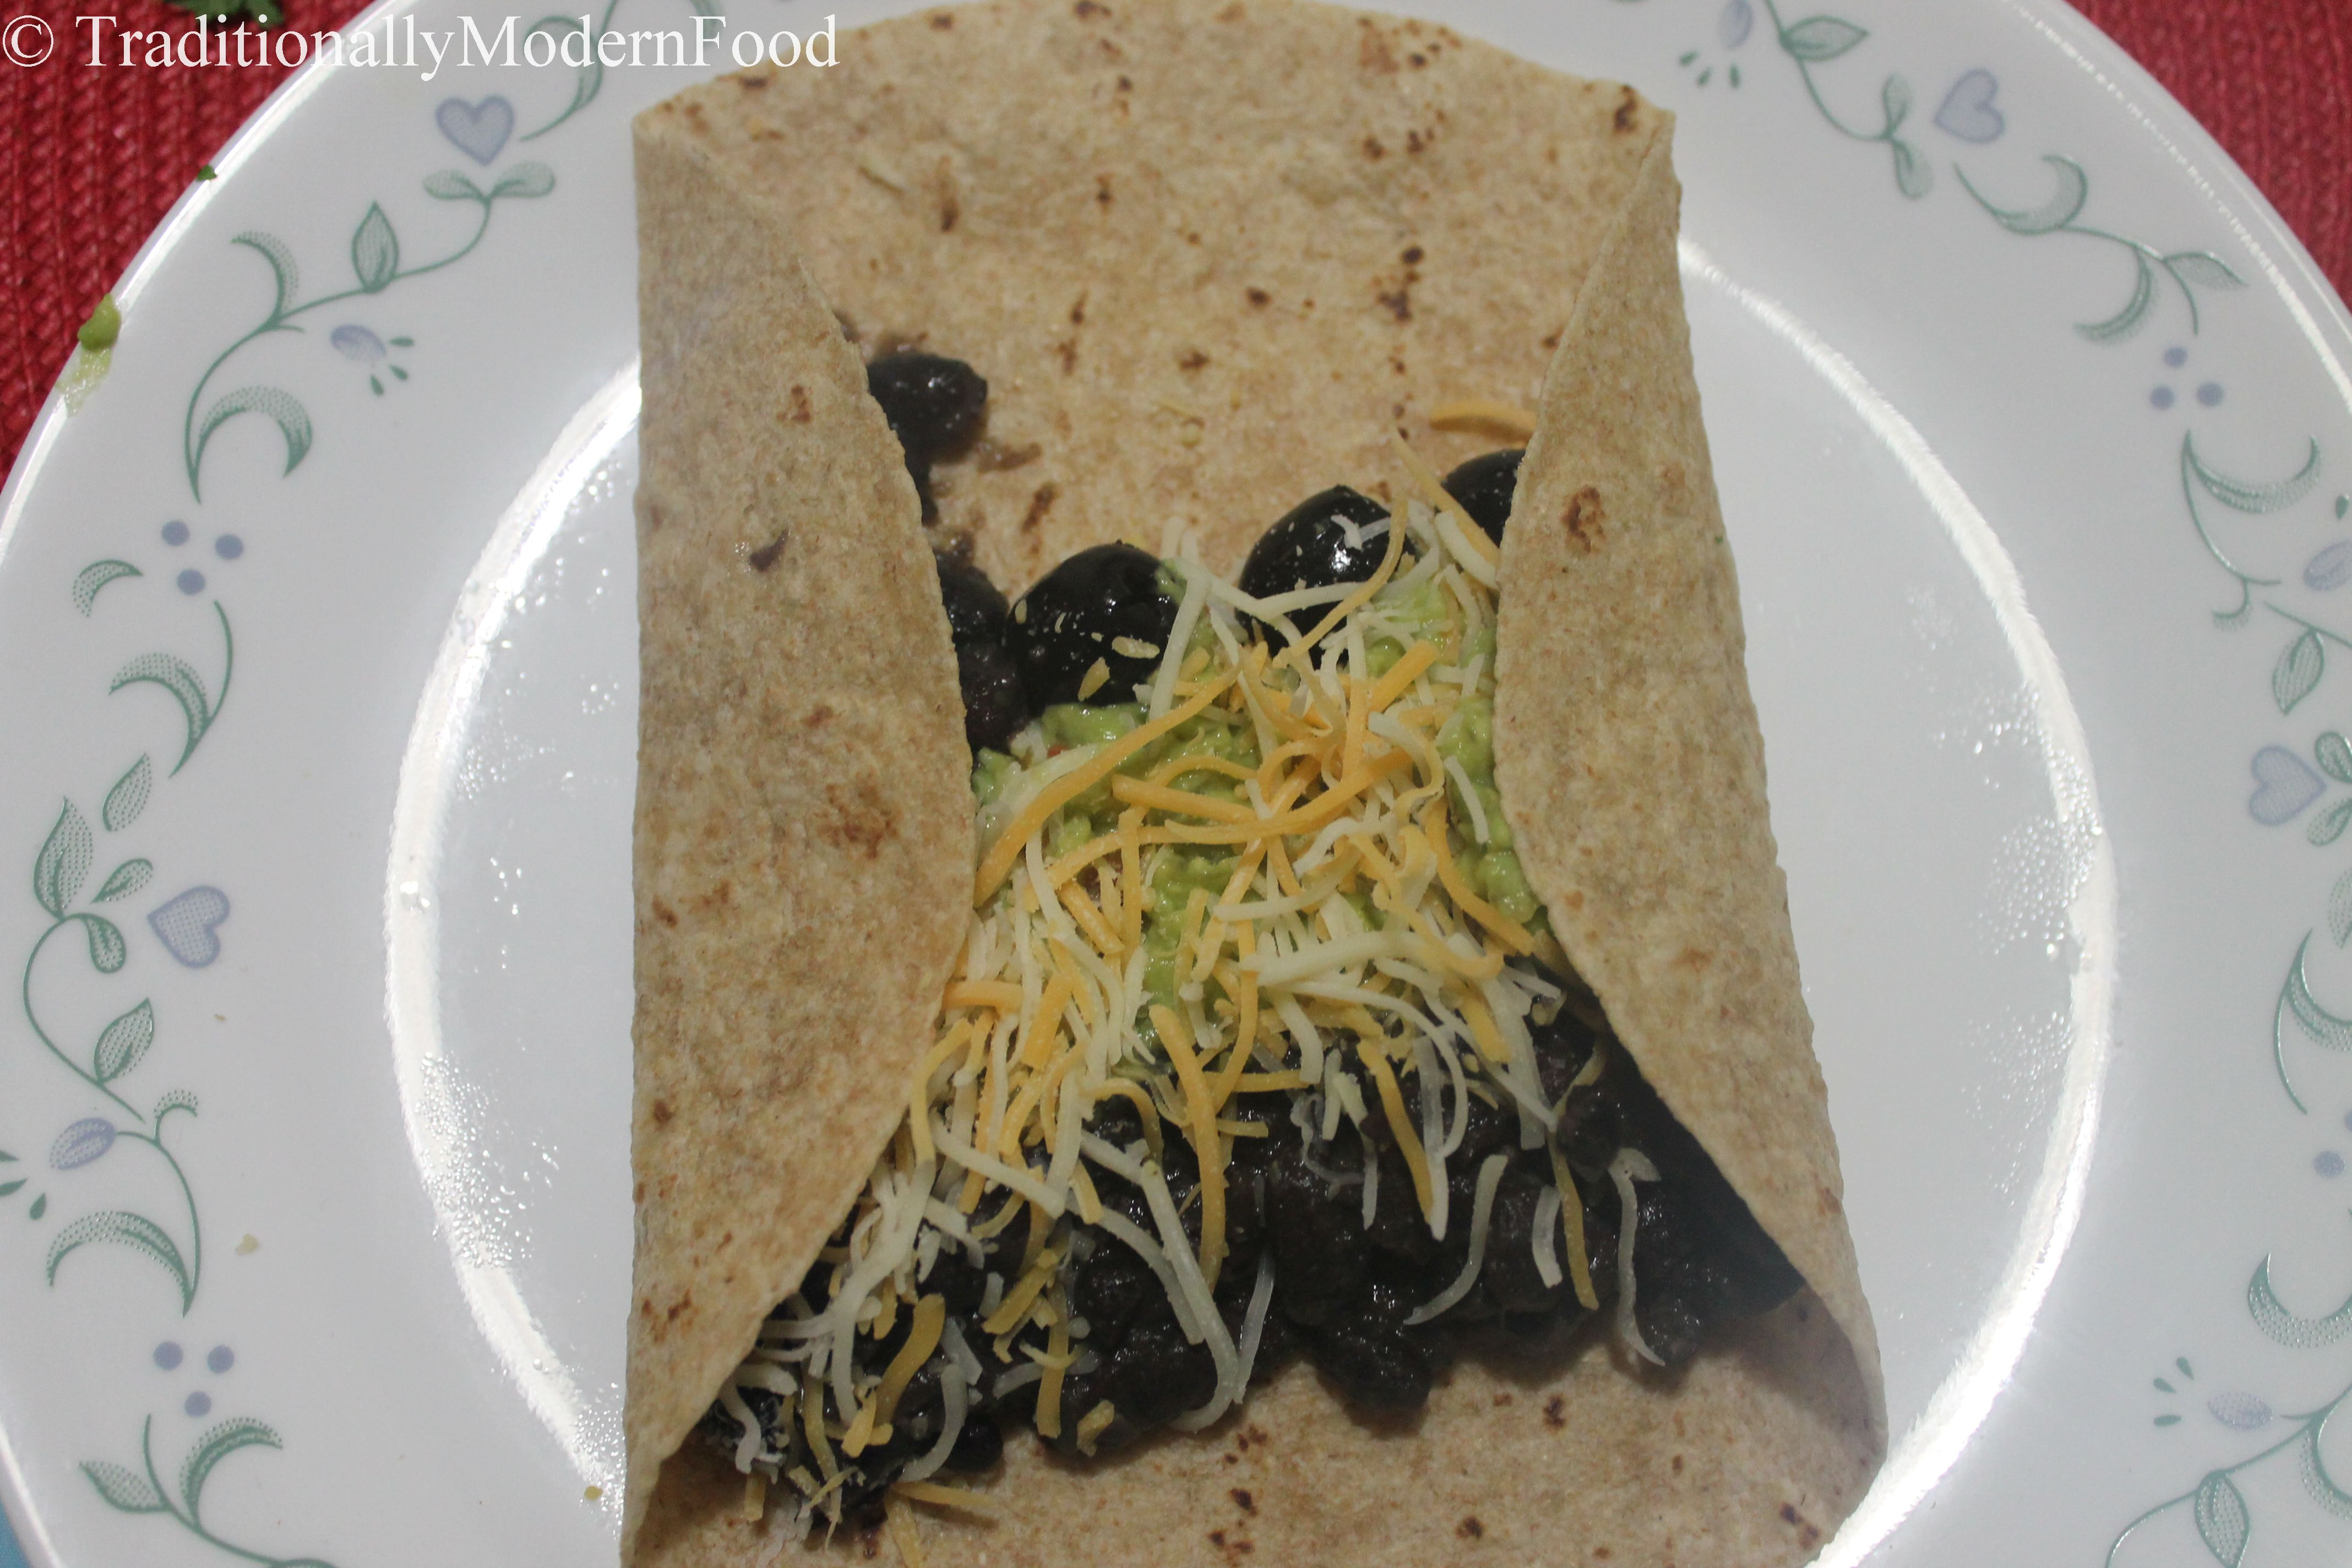 Burrito indian style traditionally modern food check out my other black bean recipes forumfinder Gallery